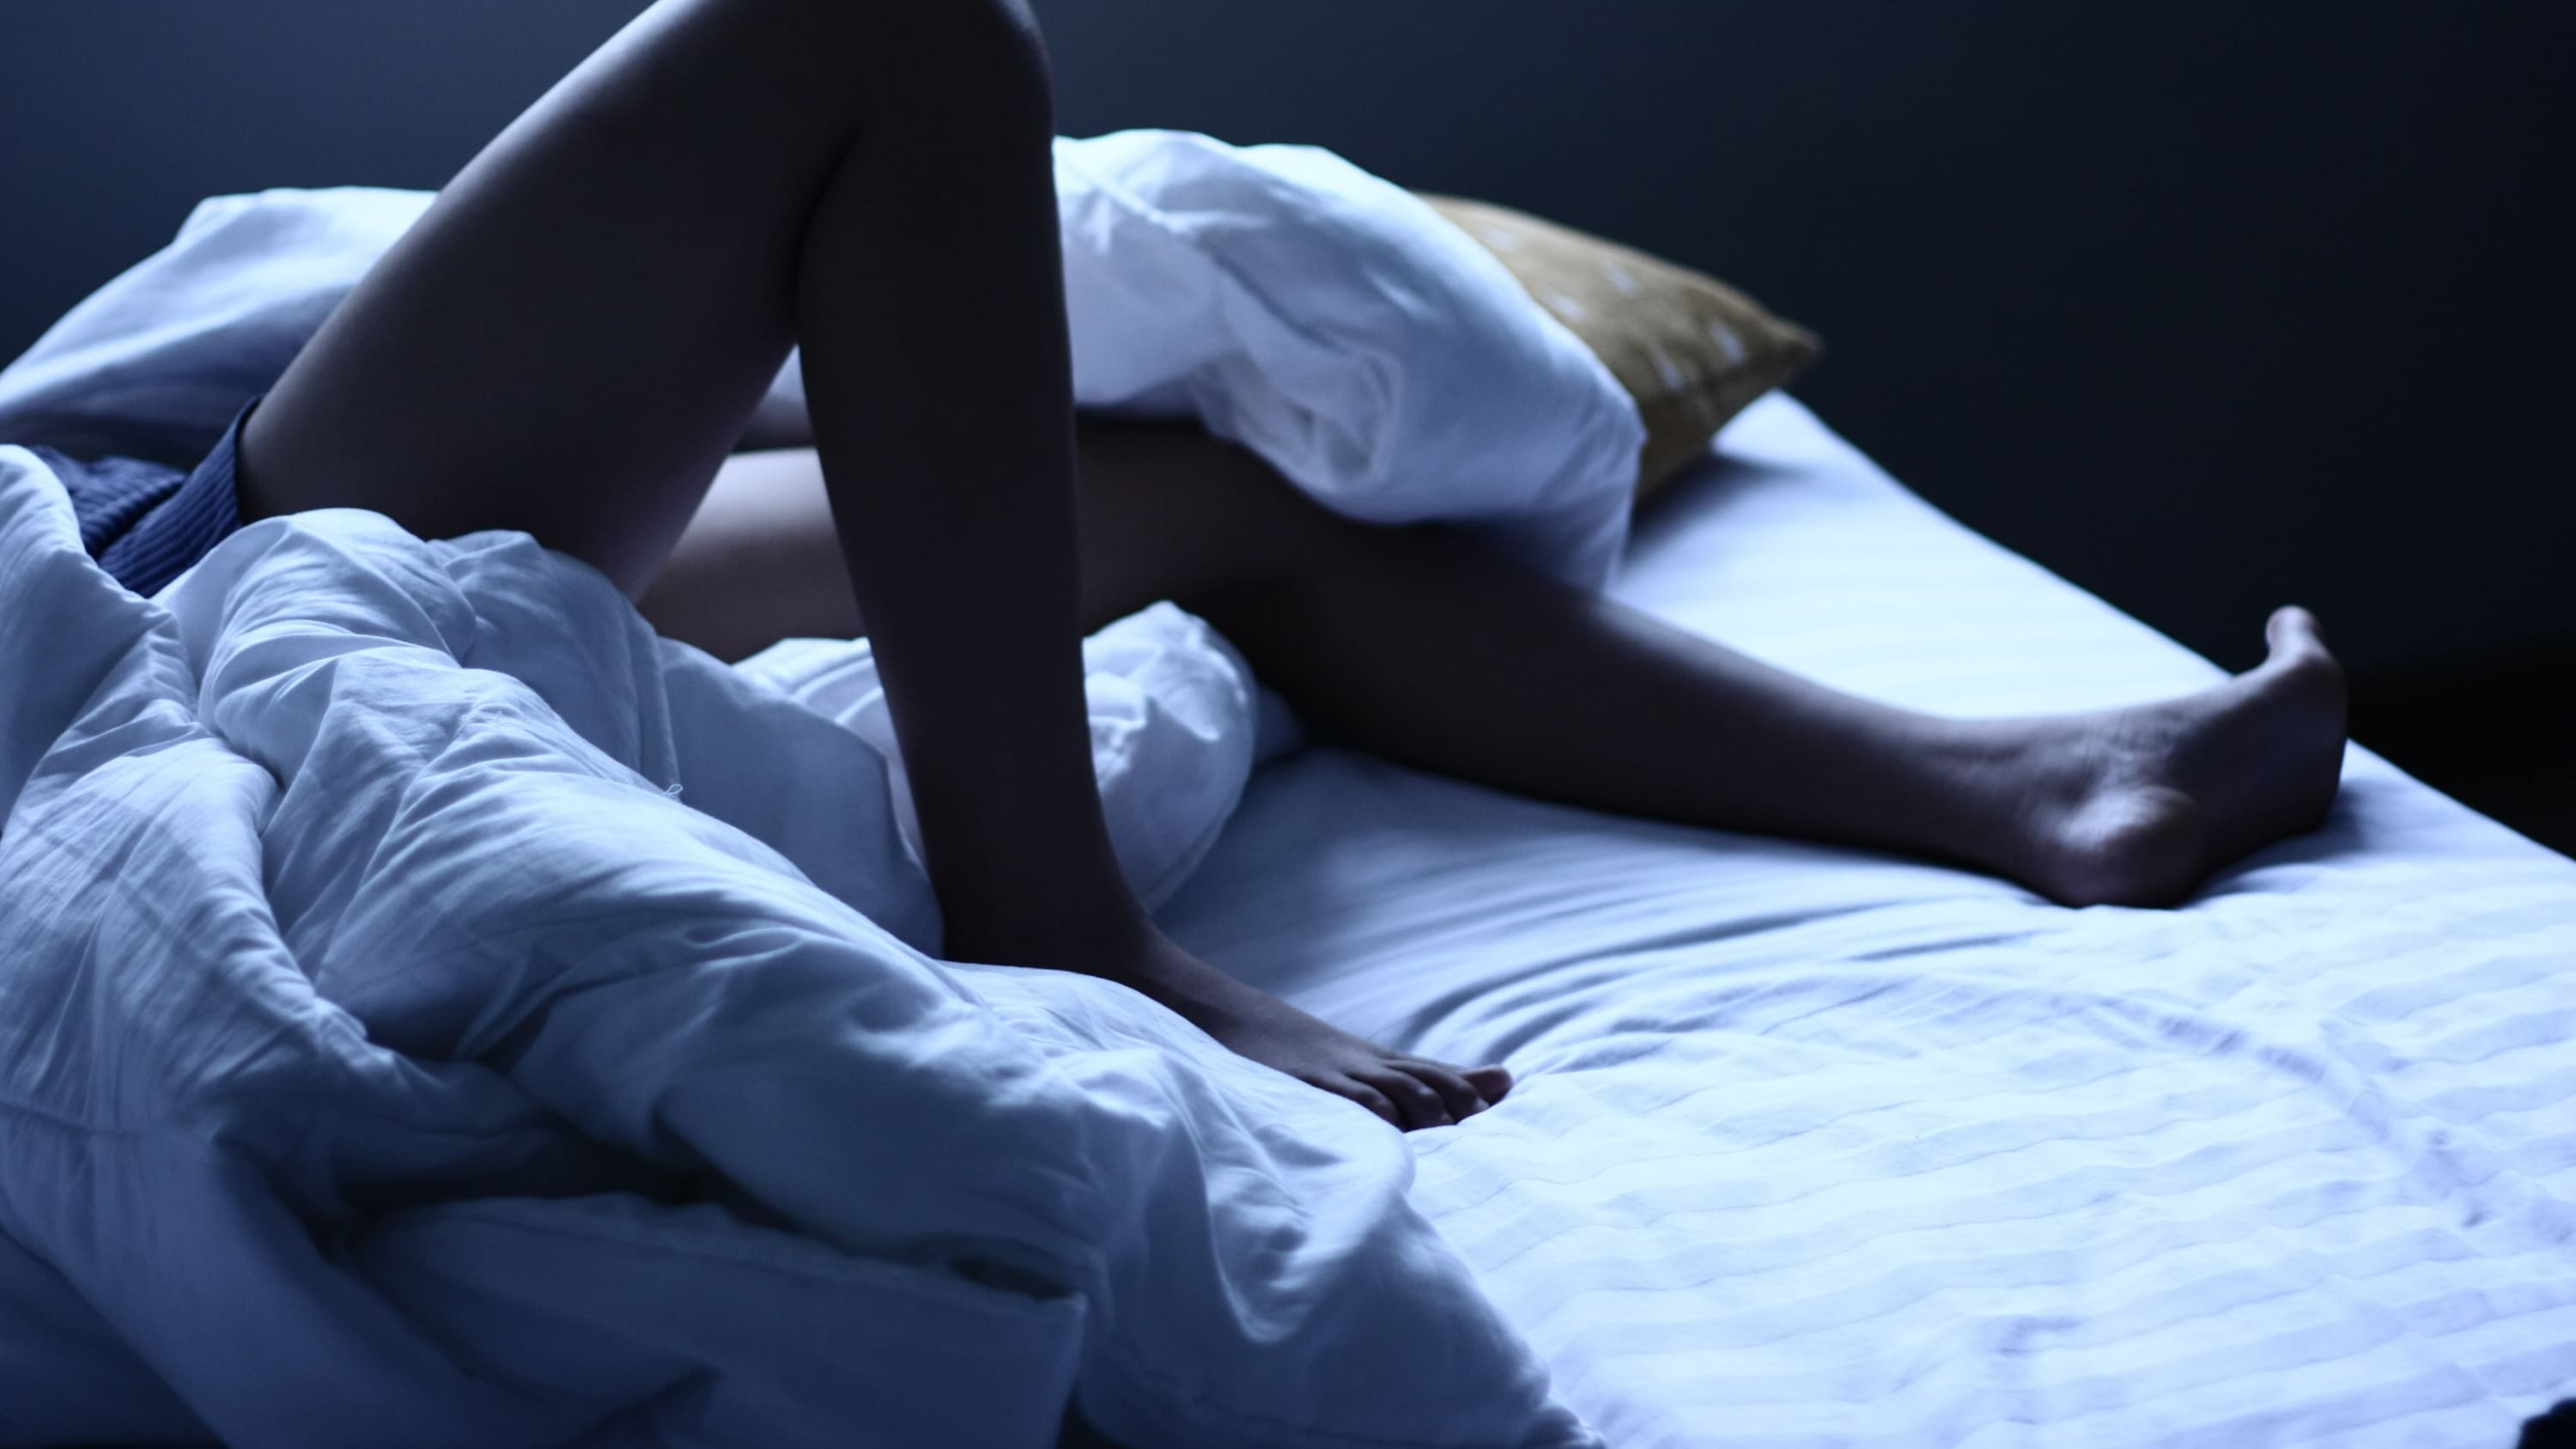 A person in bed with restless legs syndrome.